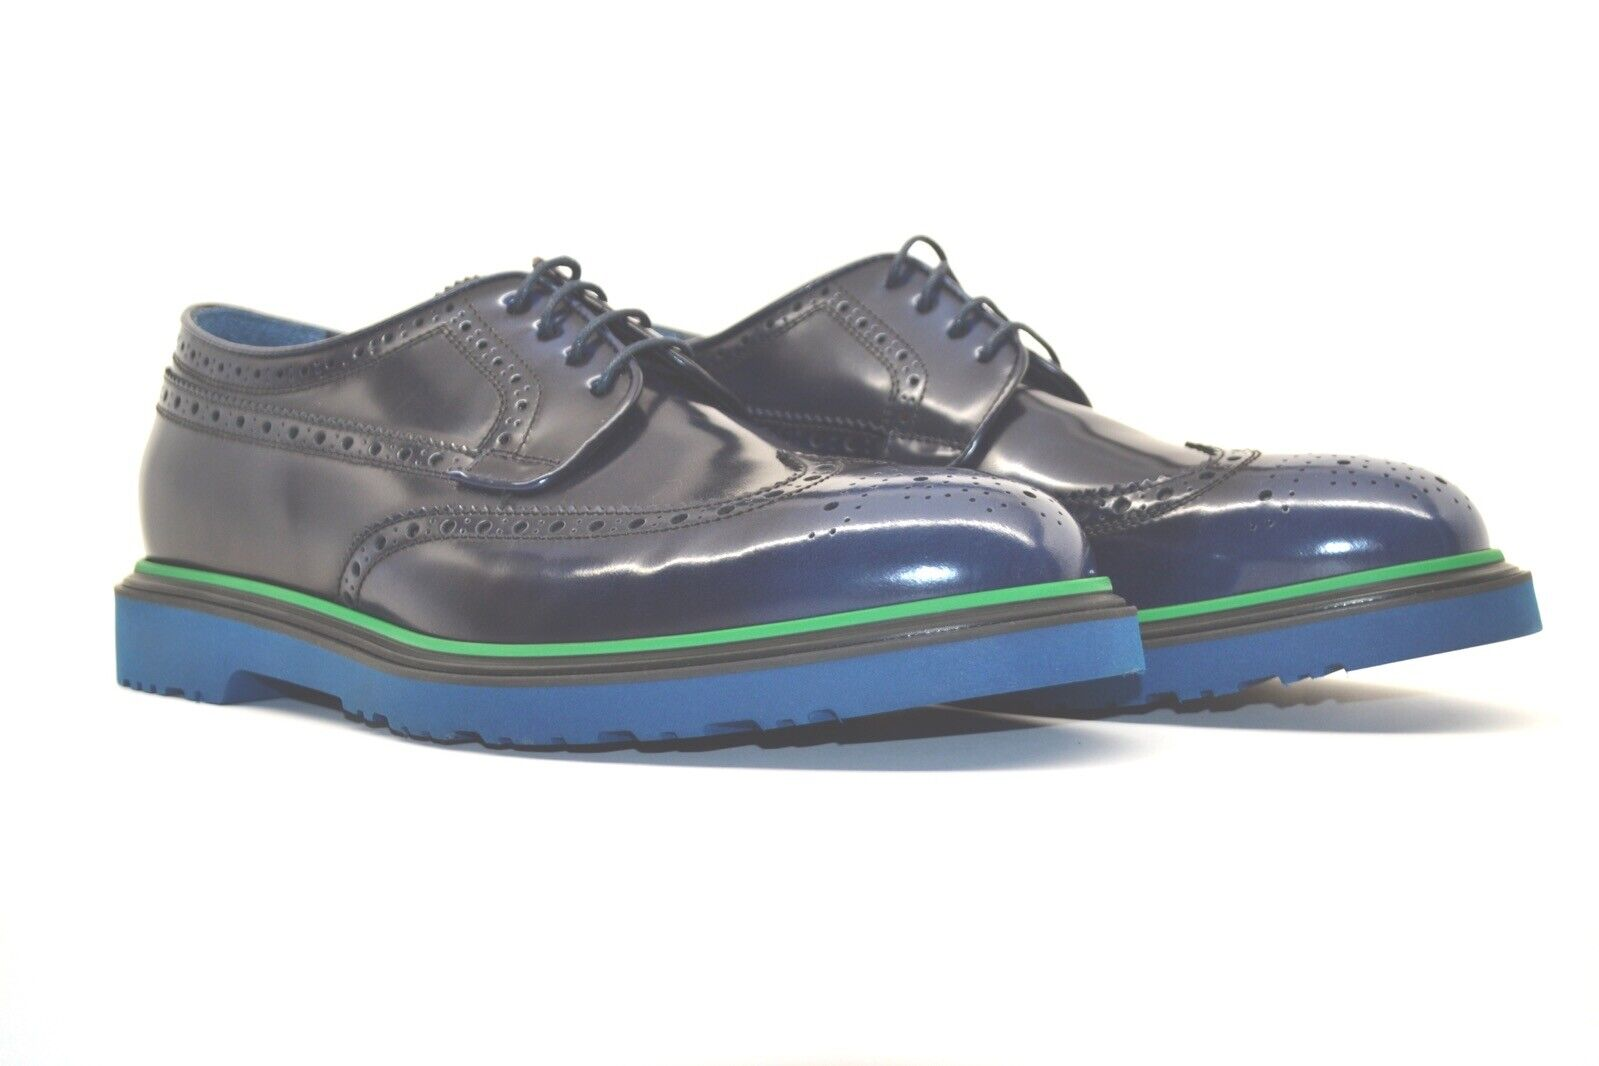 """Paul Smith """"CRISPIN"""" Navy High Shine Leather Brogues UK 11 US 12 New RRP"""